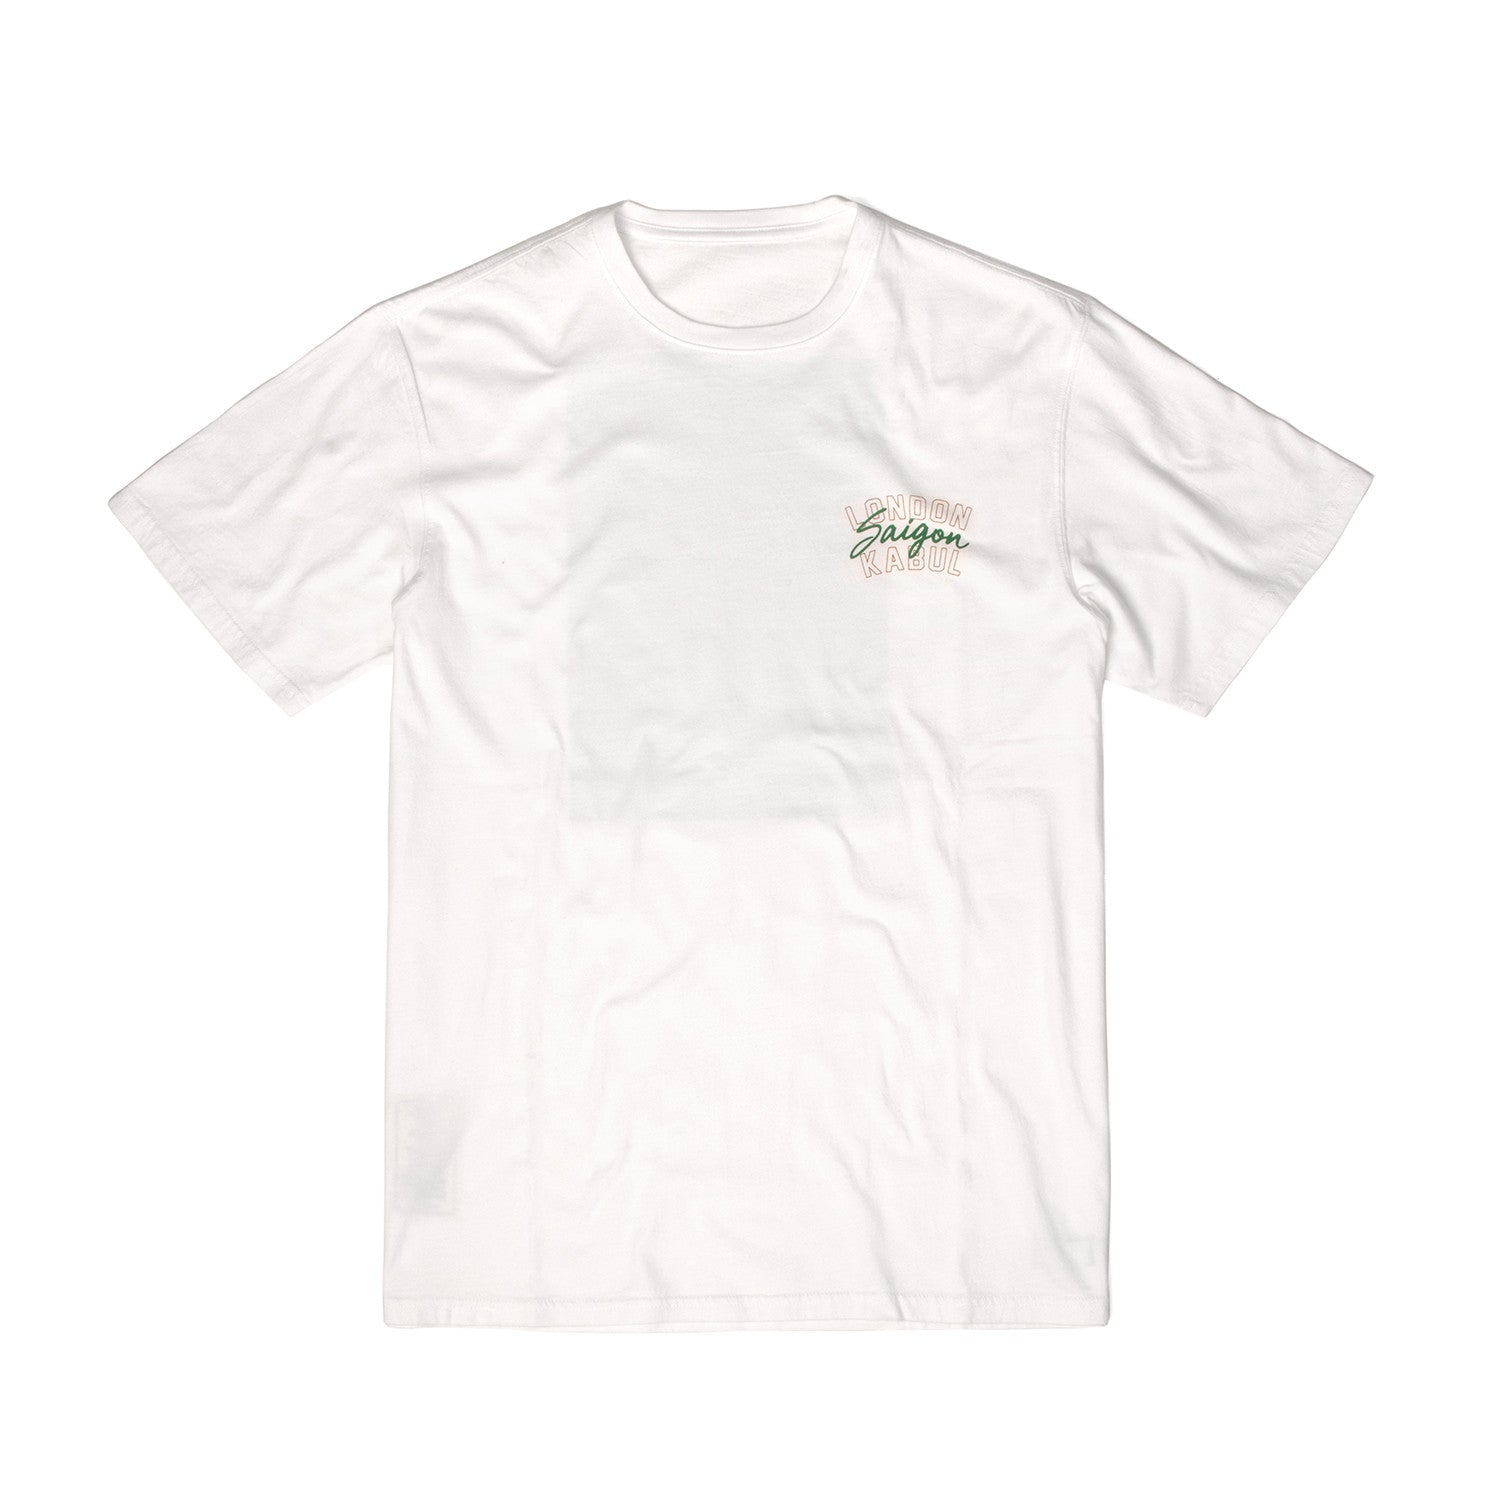 MHI Passport T-Shirt White - Concrete